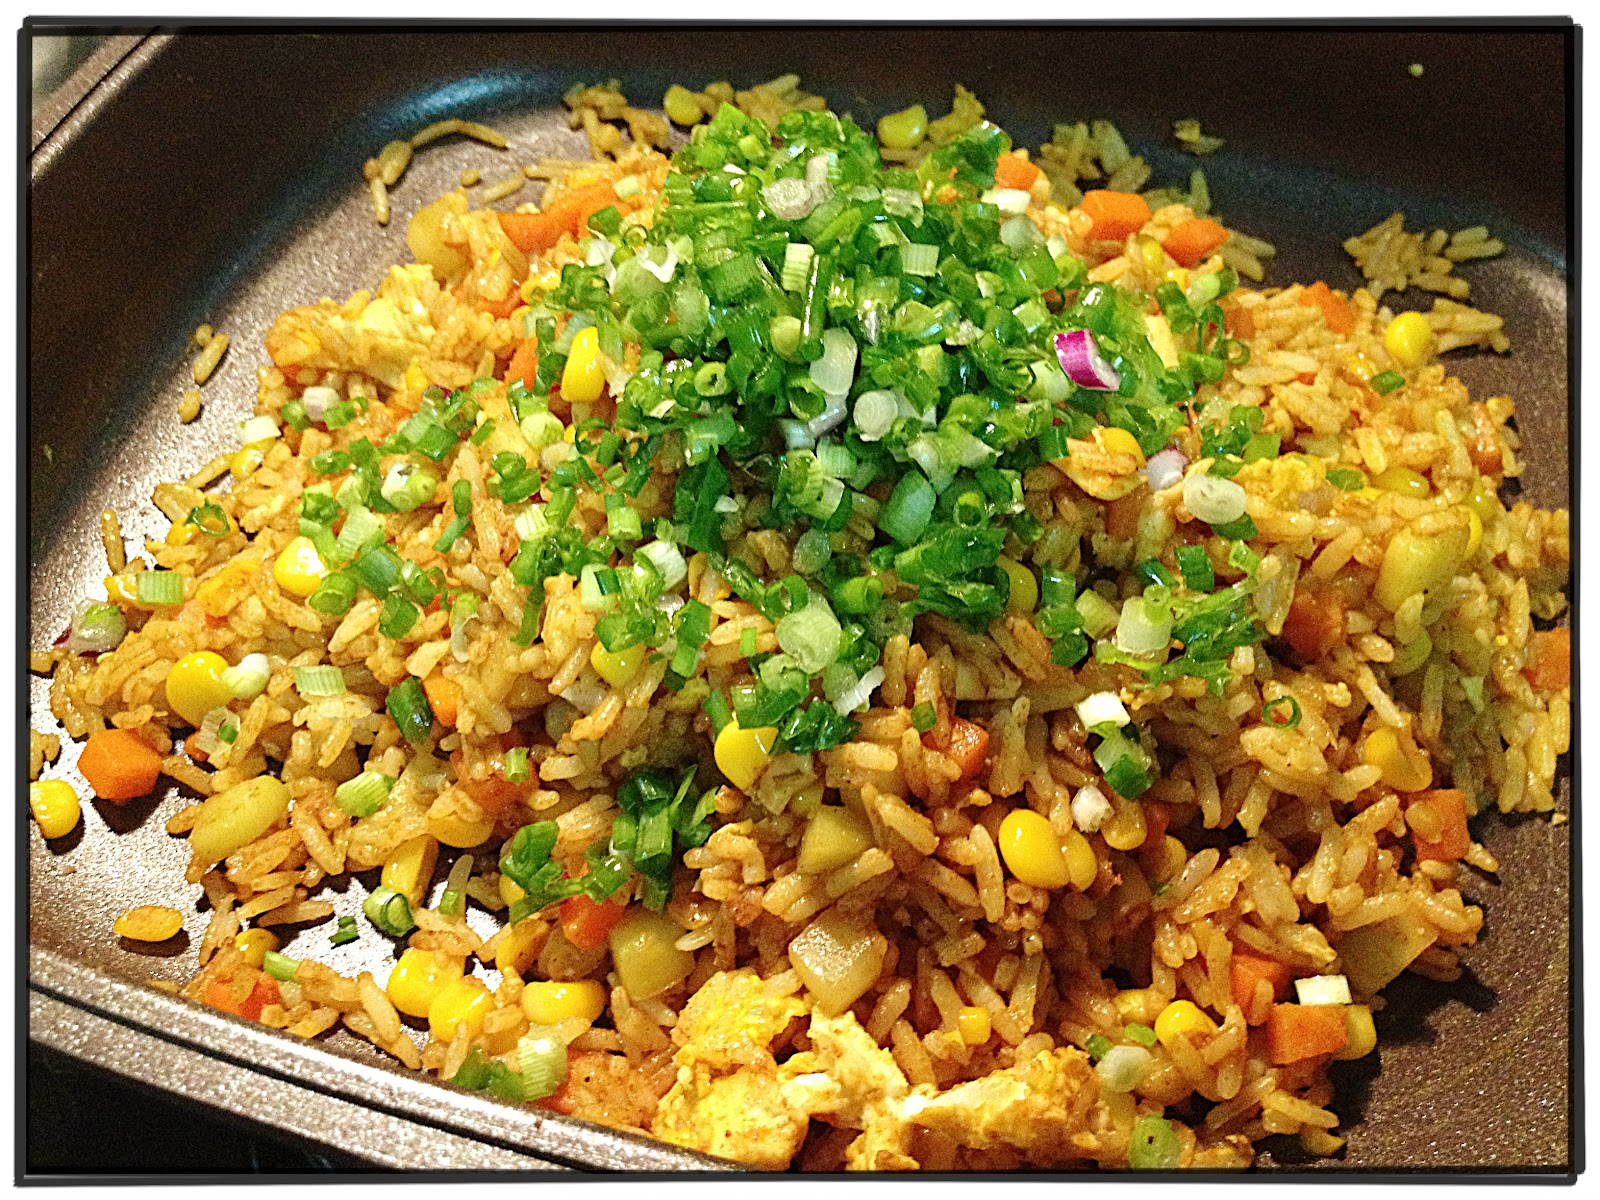 Seasoned Instant Rice S&b Instant Fried Rice Mix